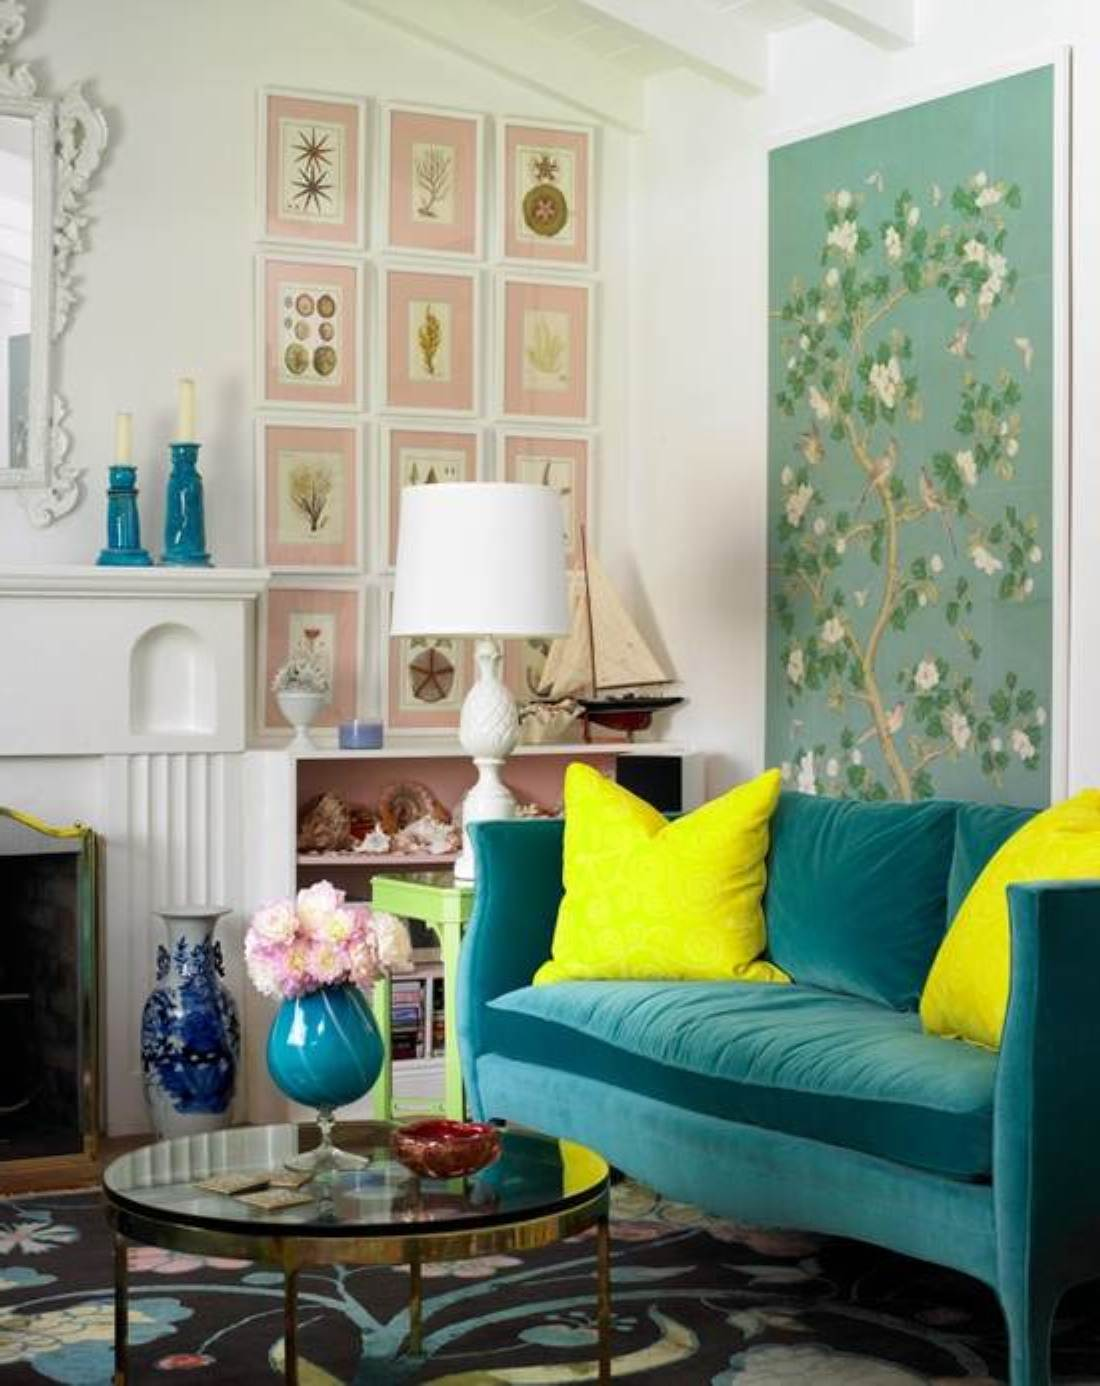 30 Amazing Small Spaces Living Room Design Ideas - Decoration Love